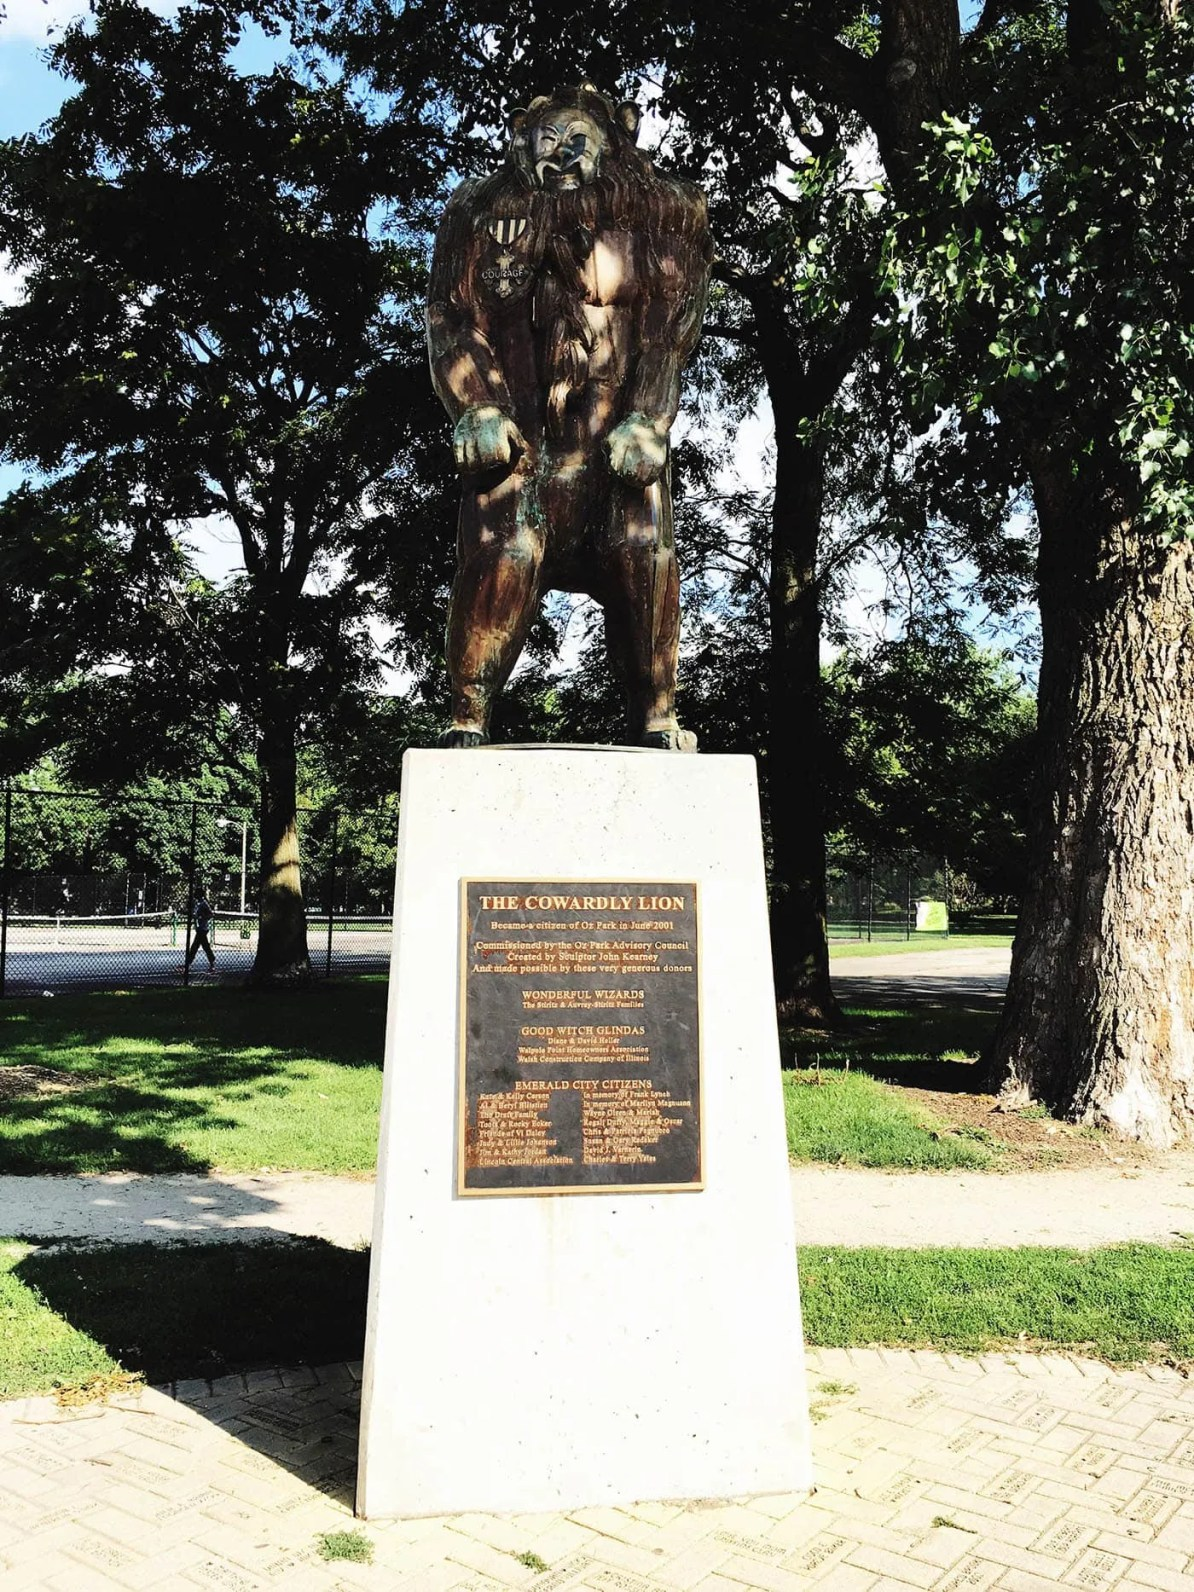 The Cowardly Lion  statue at Oz Park in Chicago, Illinois - a Wizard of Oz themed Park.